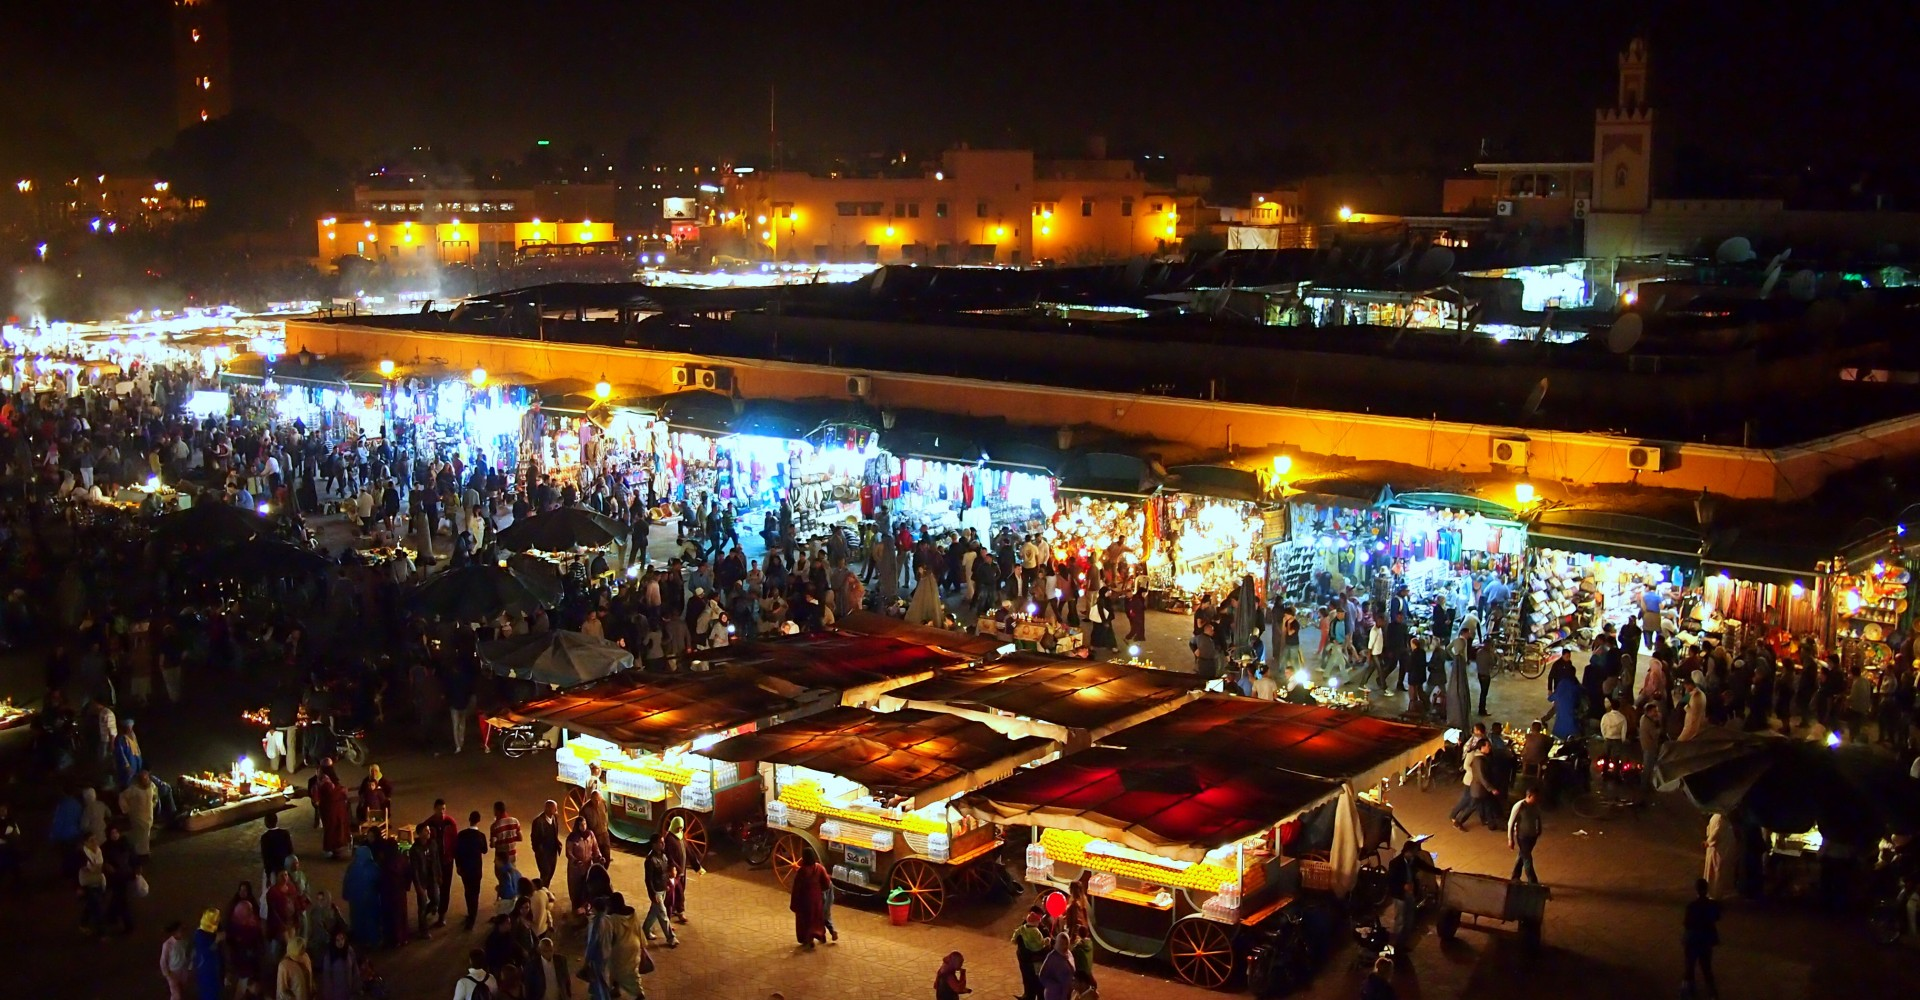 Sensory Overload at Marrakesh's Djemaa el-Fna